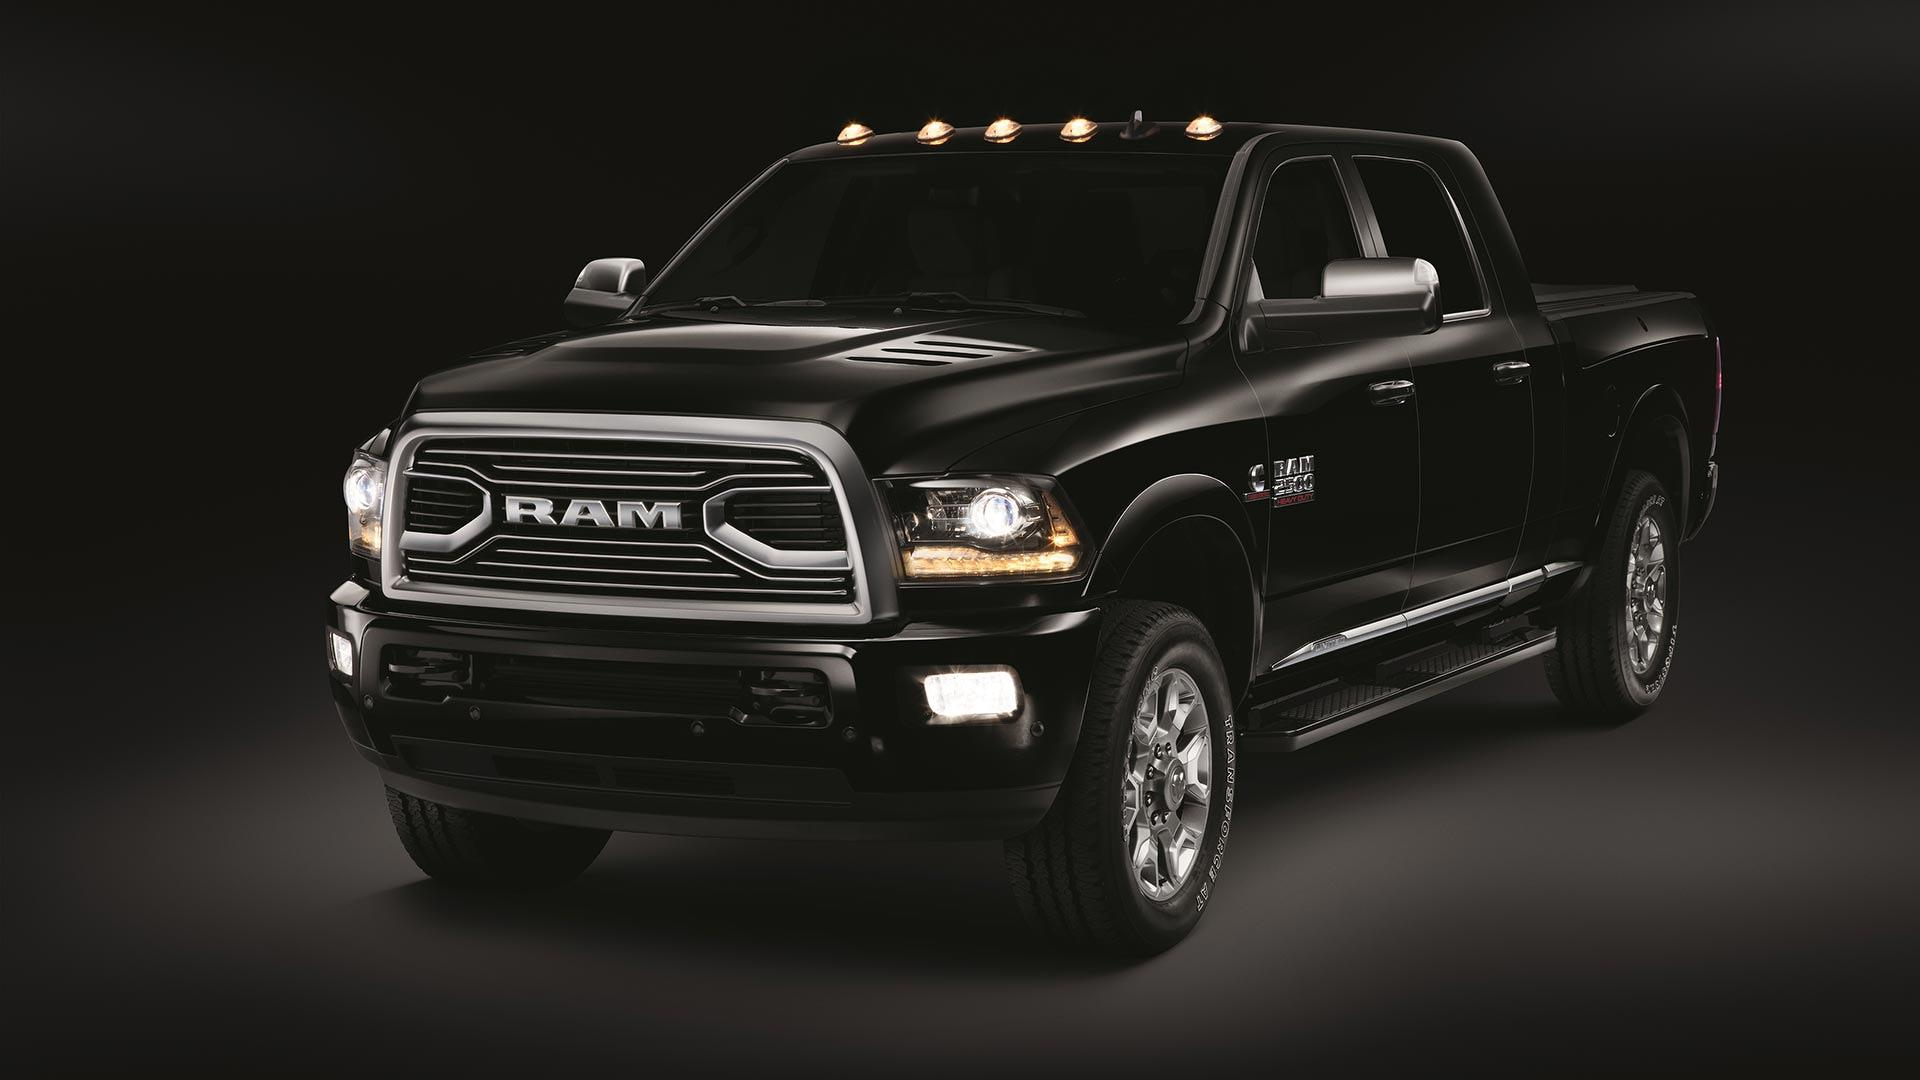 2018 Ram Pickup Truck Platform to Bring Forth SUV, Dakota ...